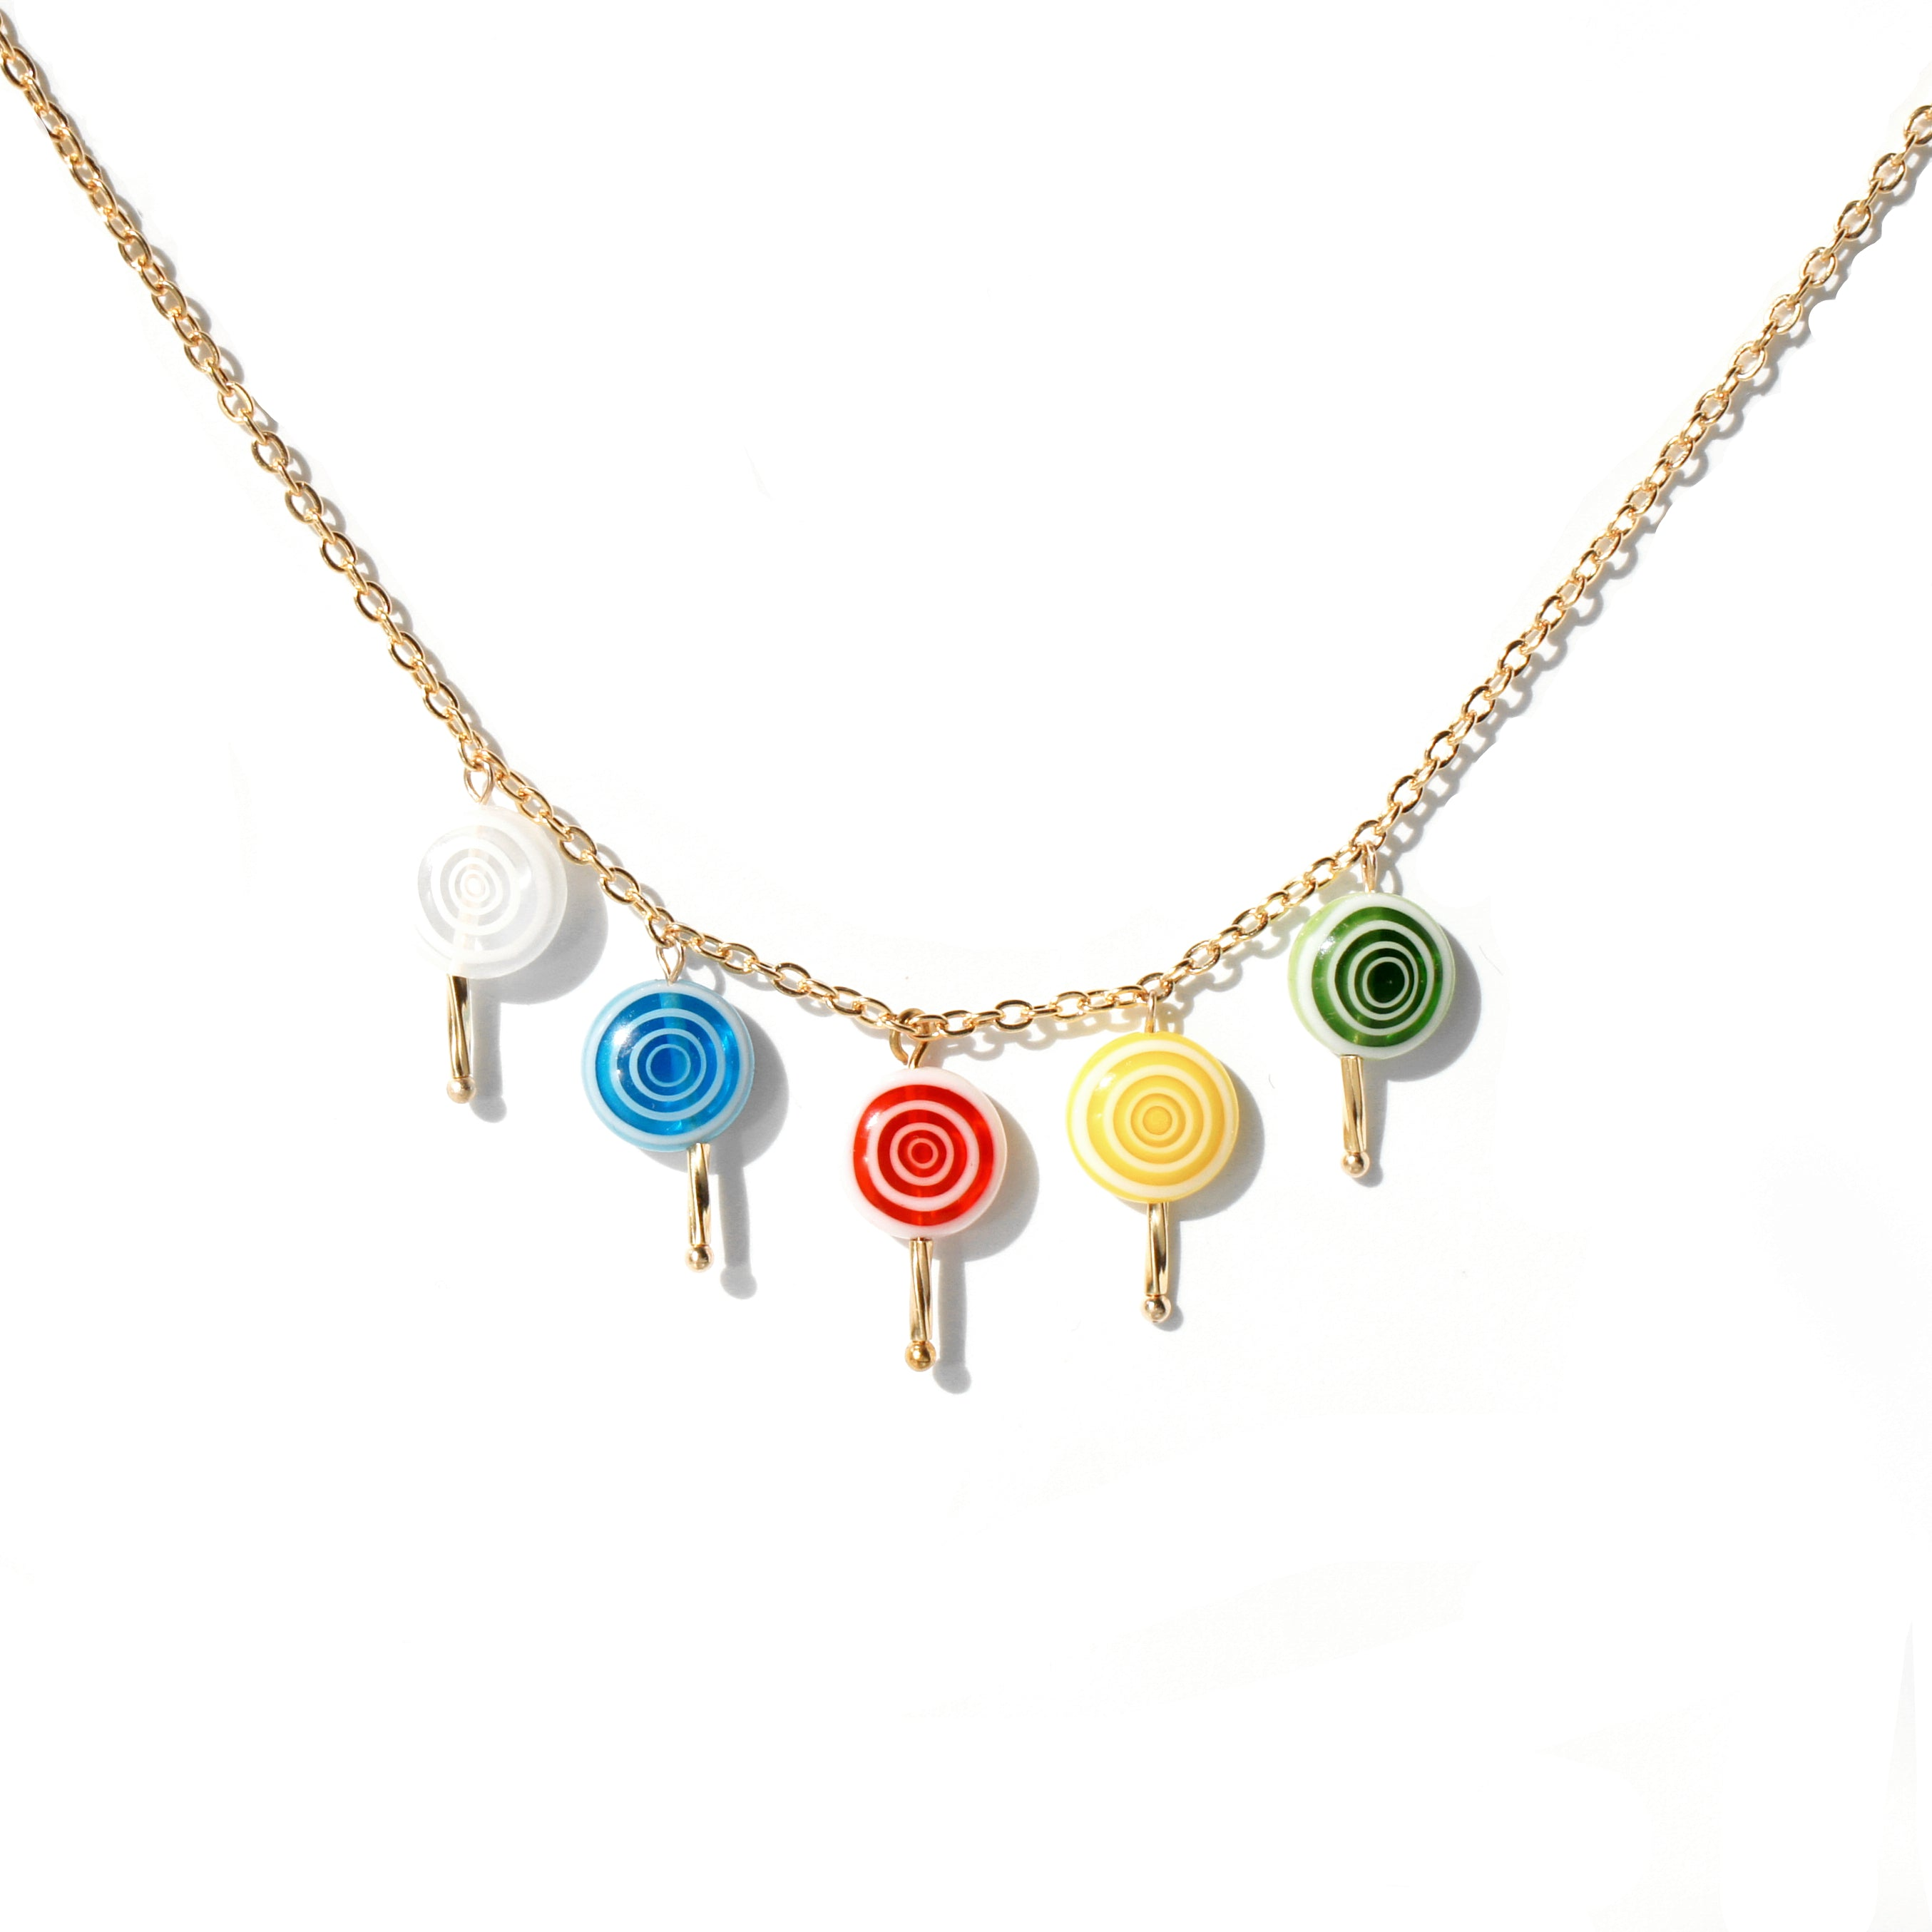 Sugar Sweet Swirl Lolli Necklace